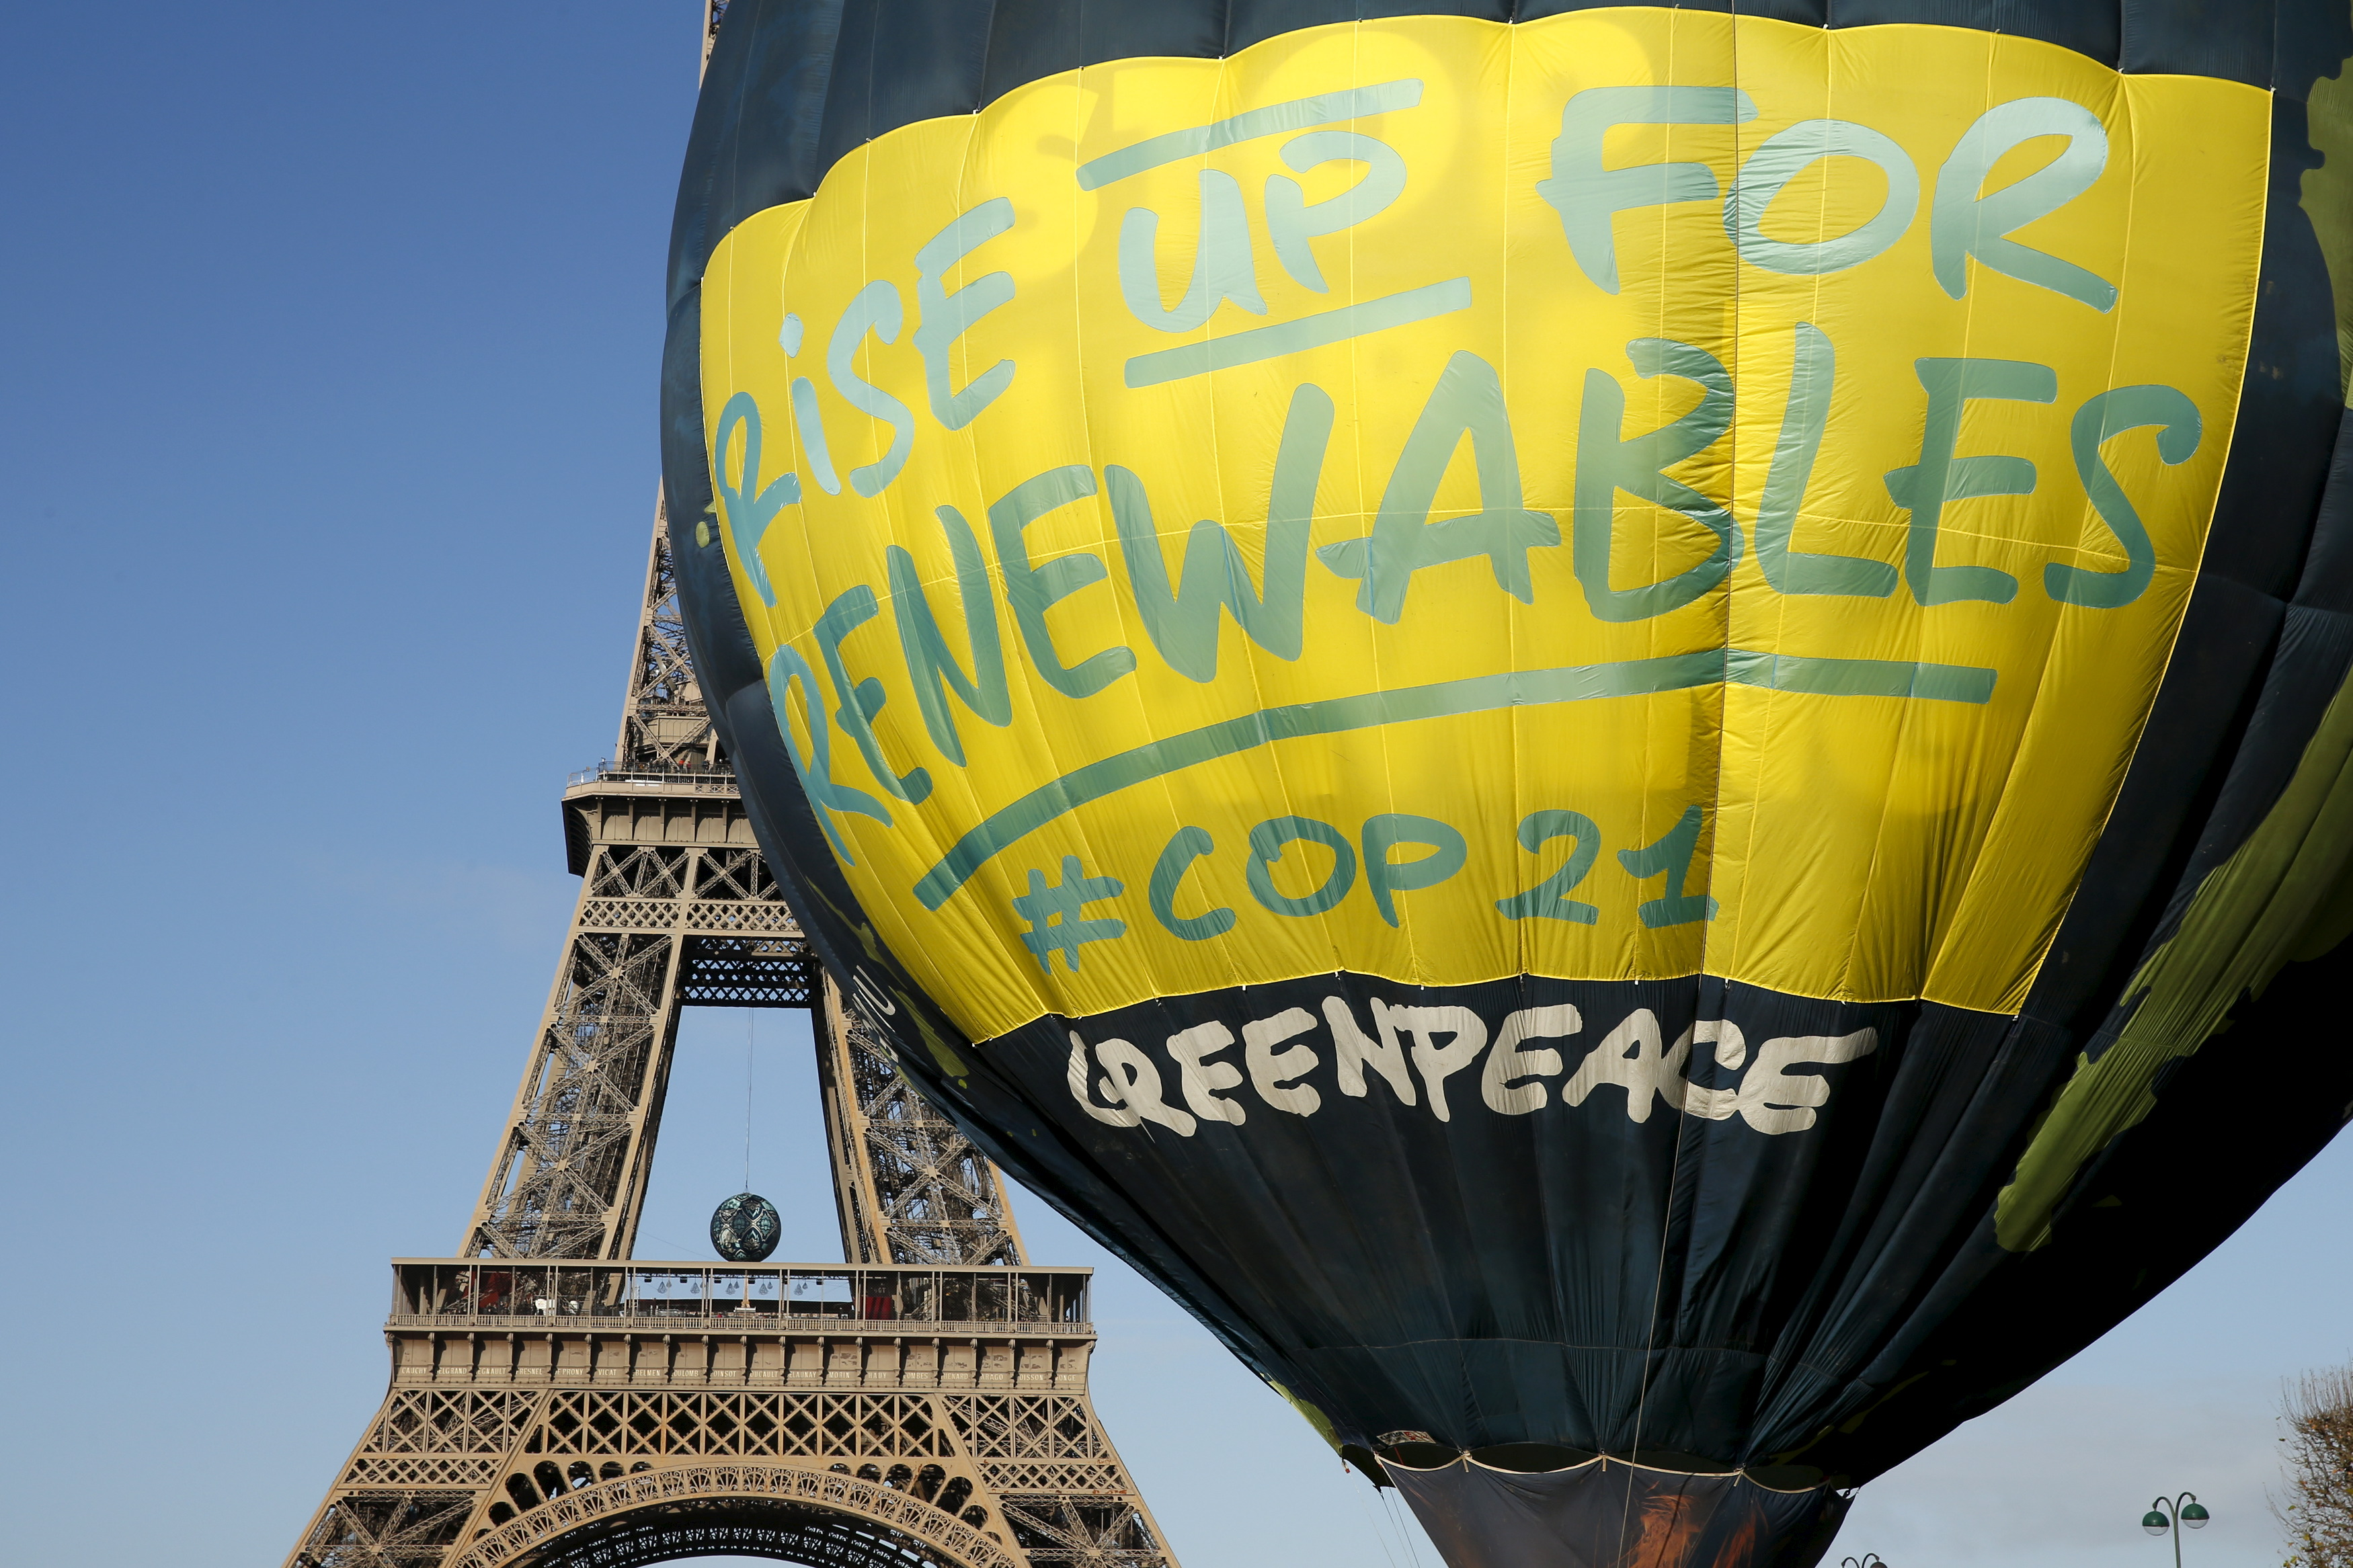 Greenpeace activists fly a hot air balloon depicting the globe next to the Eiffel Tower ahead of the 2015 Paris Climate Conference, known as the COP21 summit, in Paris